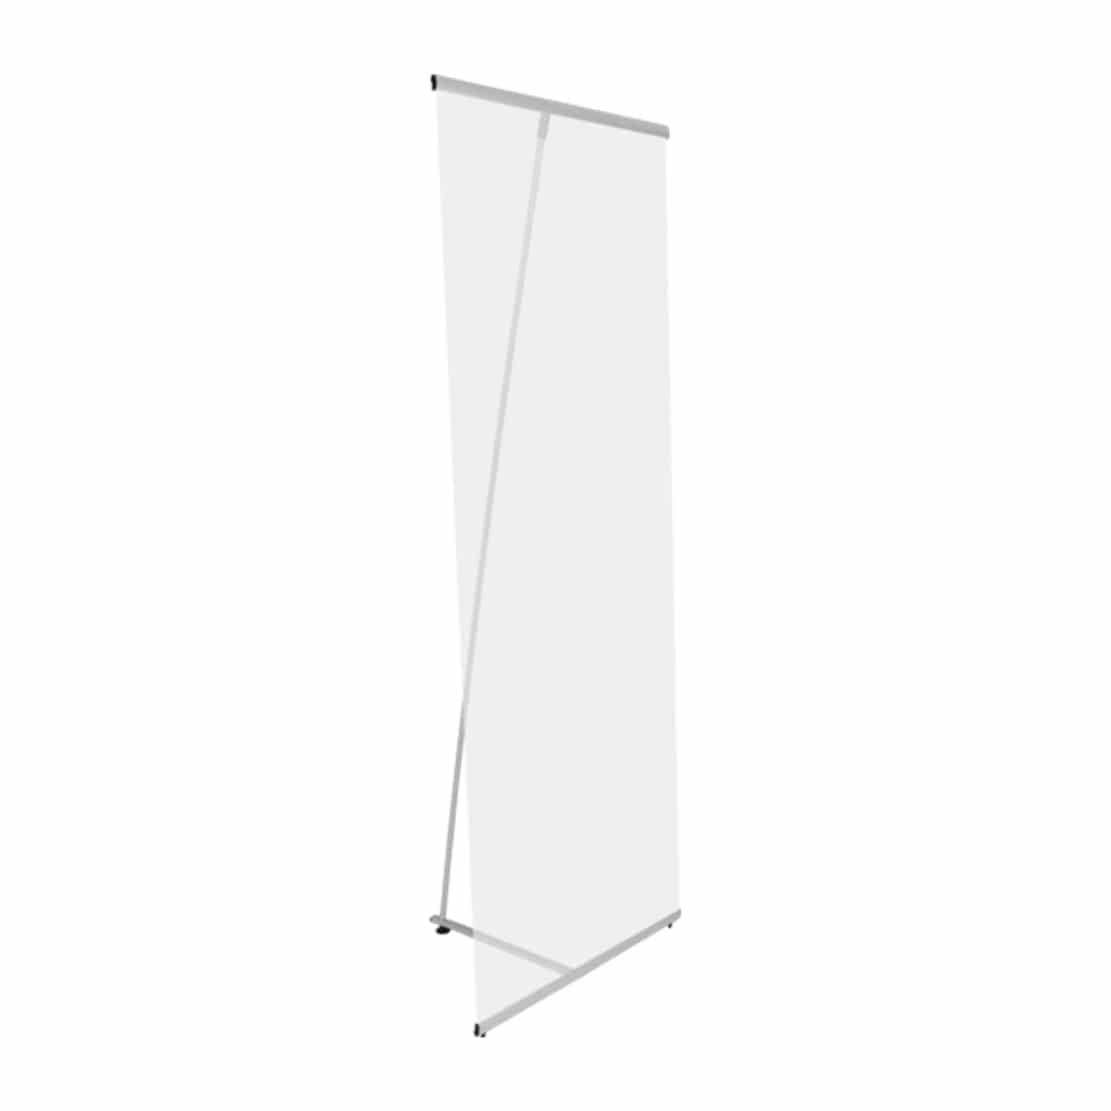 lightning banner stand display side view showing pole and graphics bars